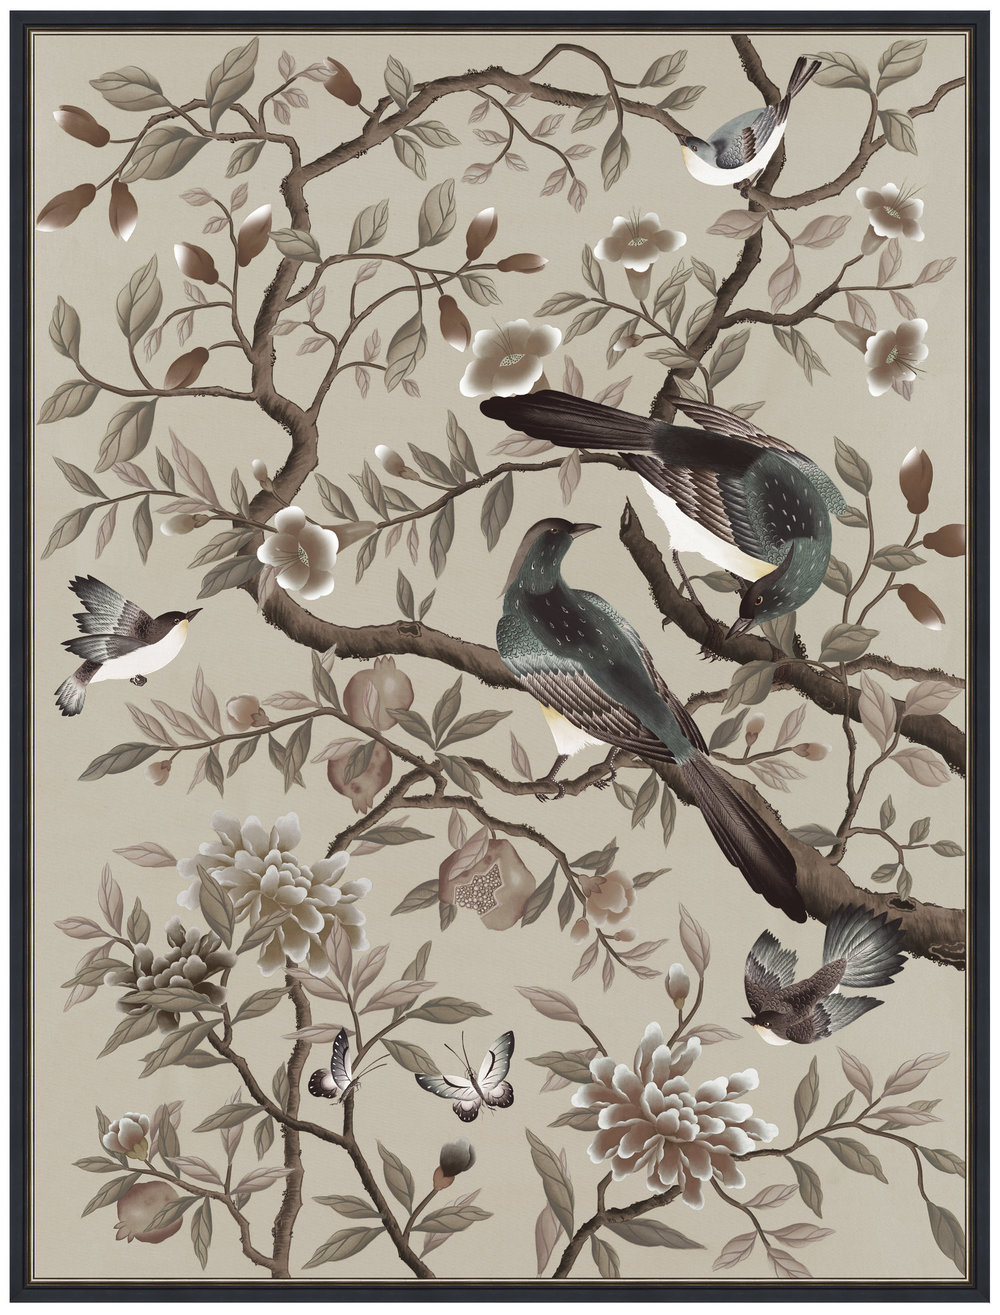 Diane Hill- Chinoiserie print- From £45